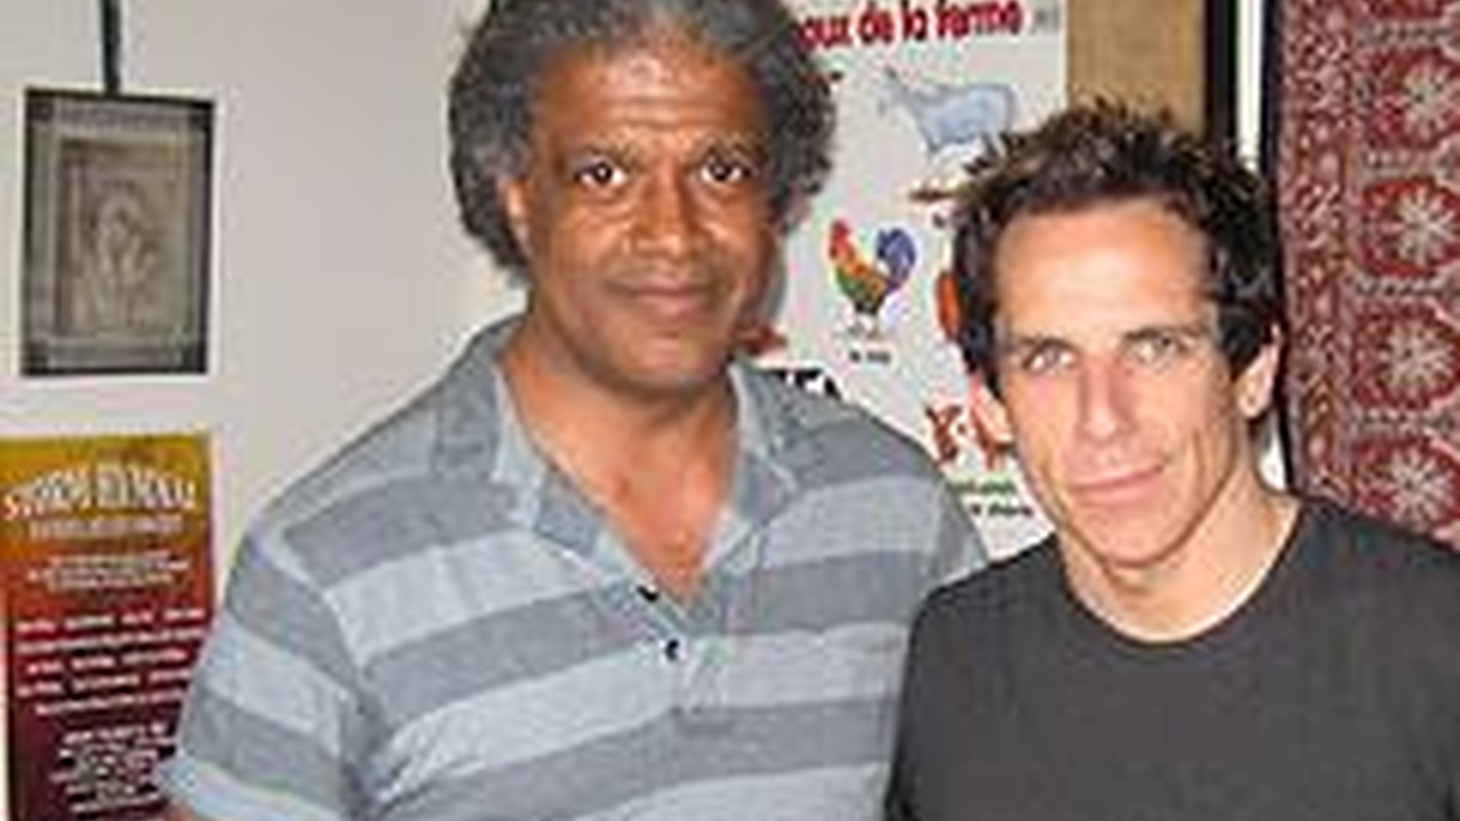 Ben Stiller (Zoolander, Meet the Fockers, The Cable Guy, Reality Bites) is a director, producer and writer. But he's first